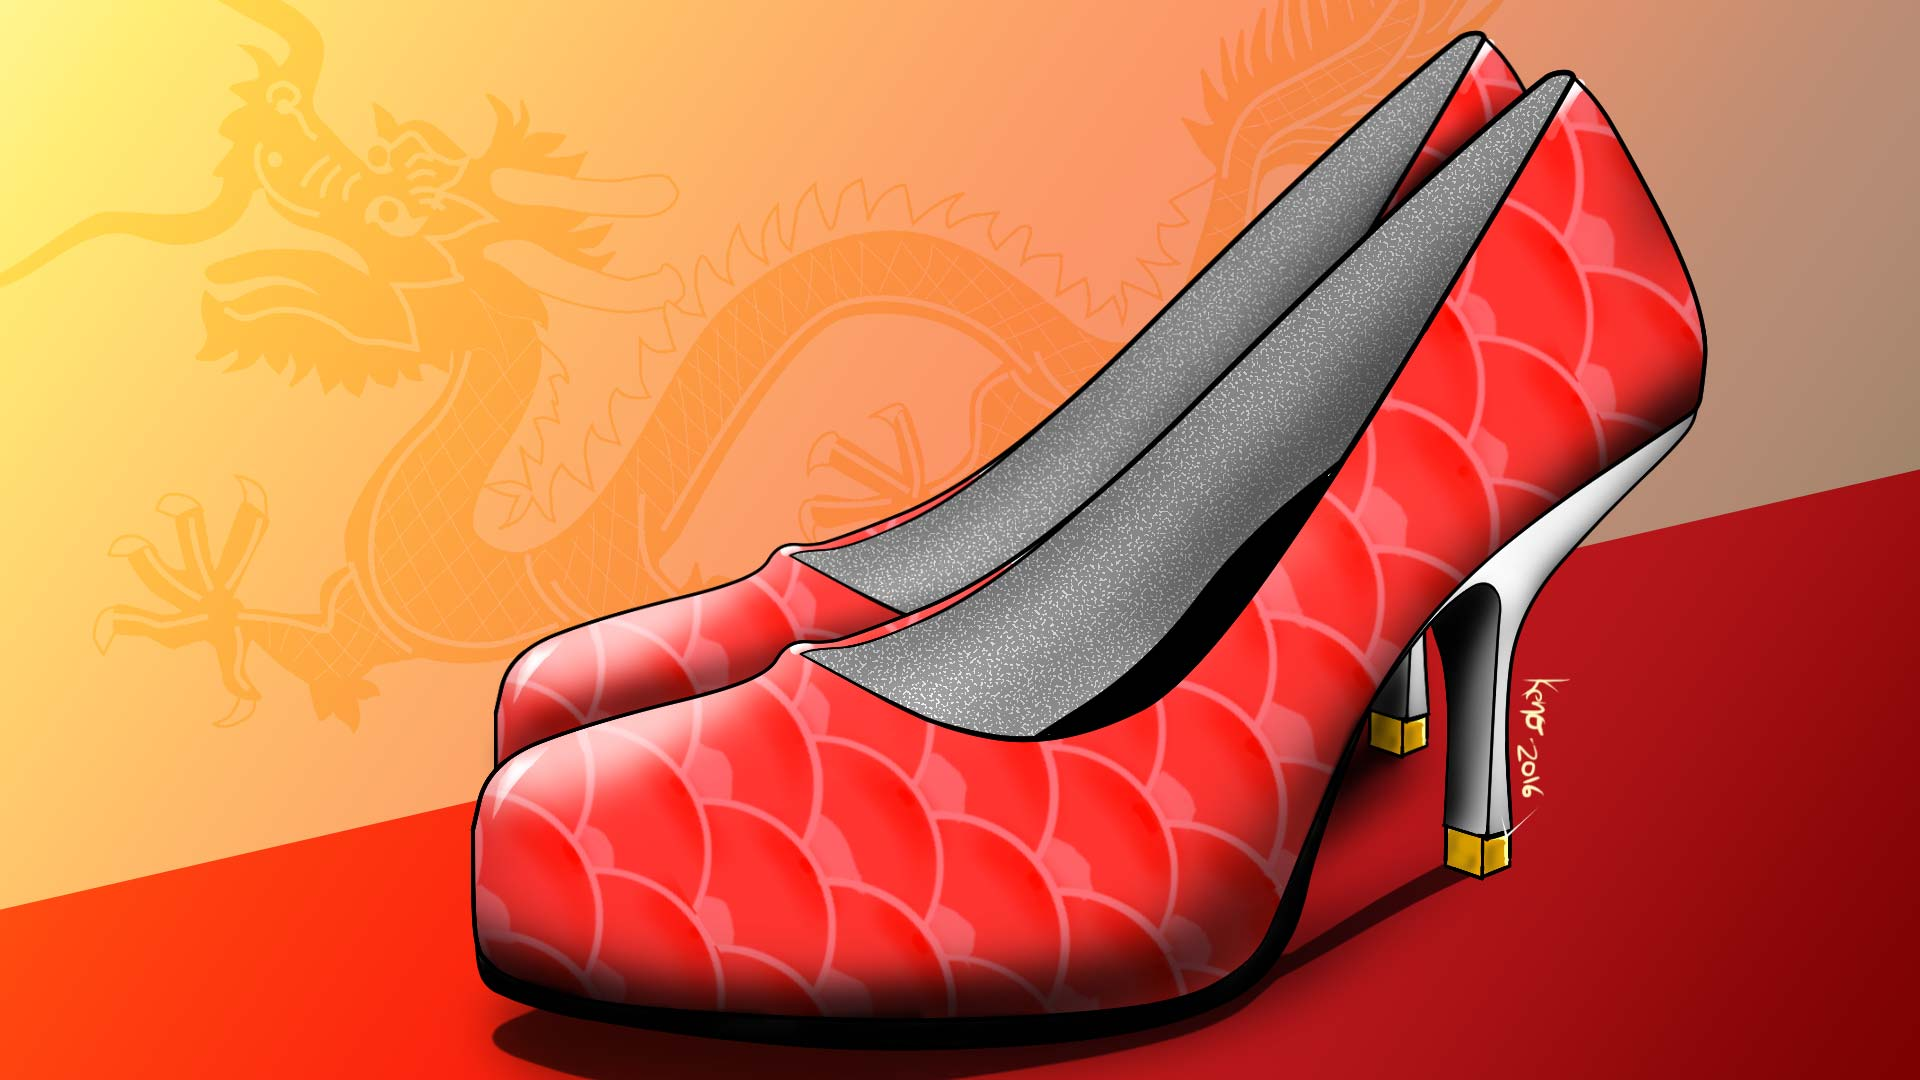 Dragon Heels footwear concept